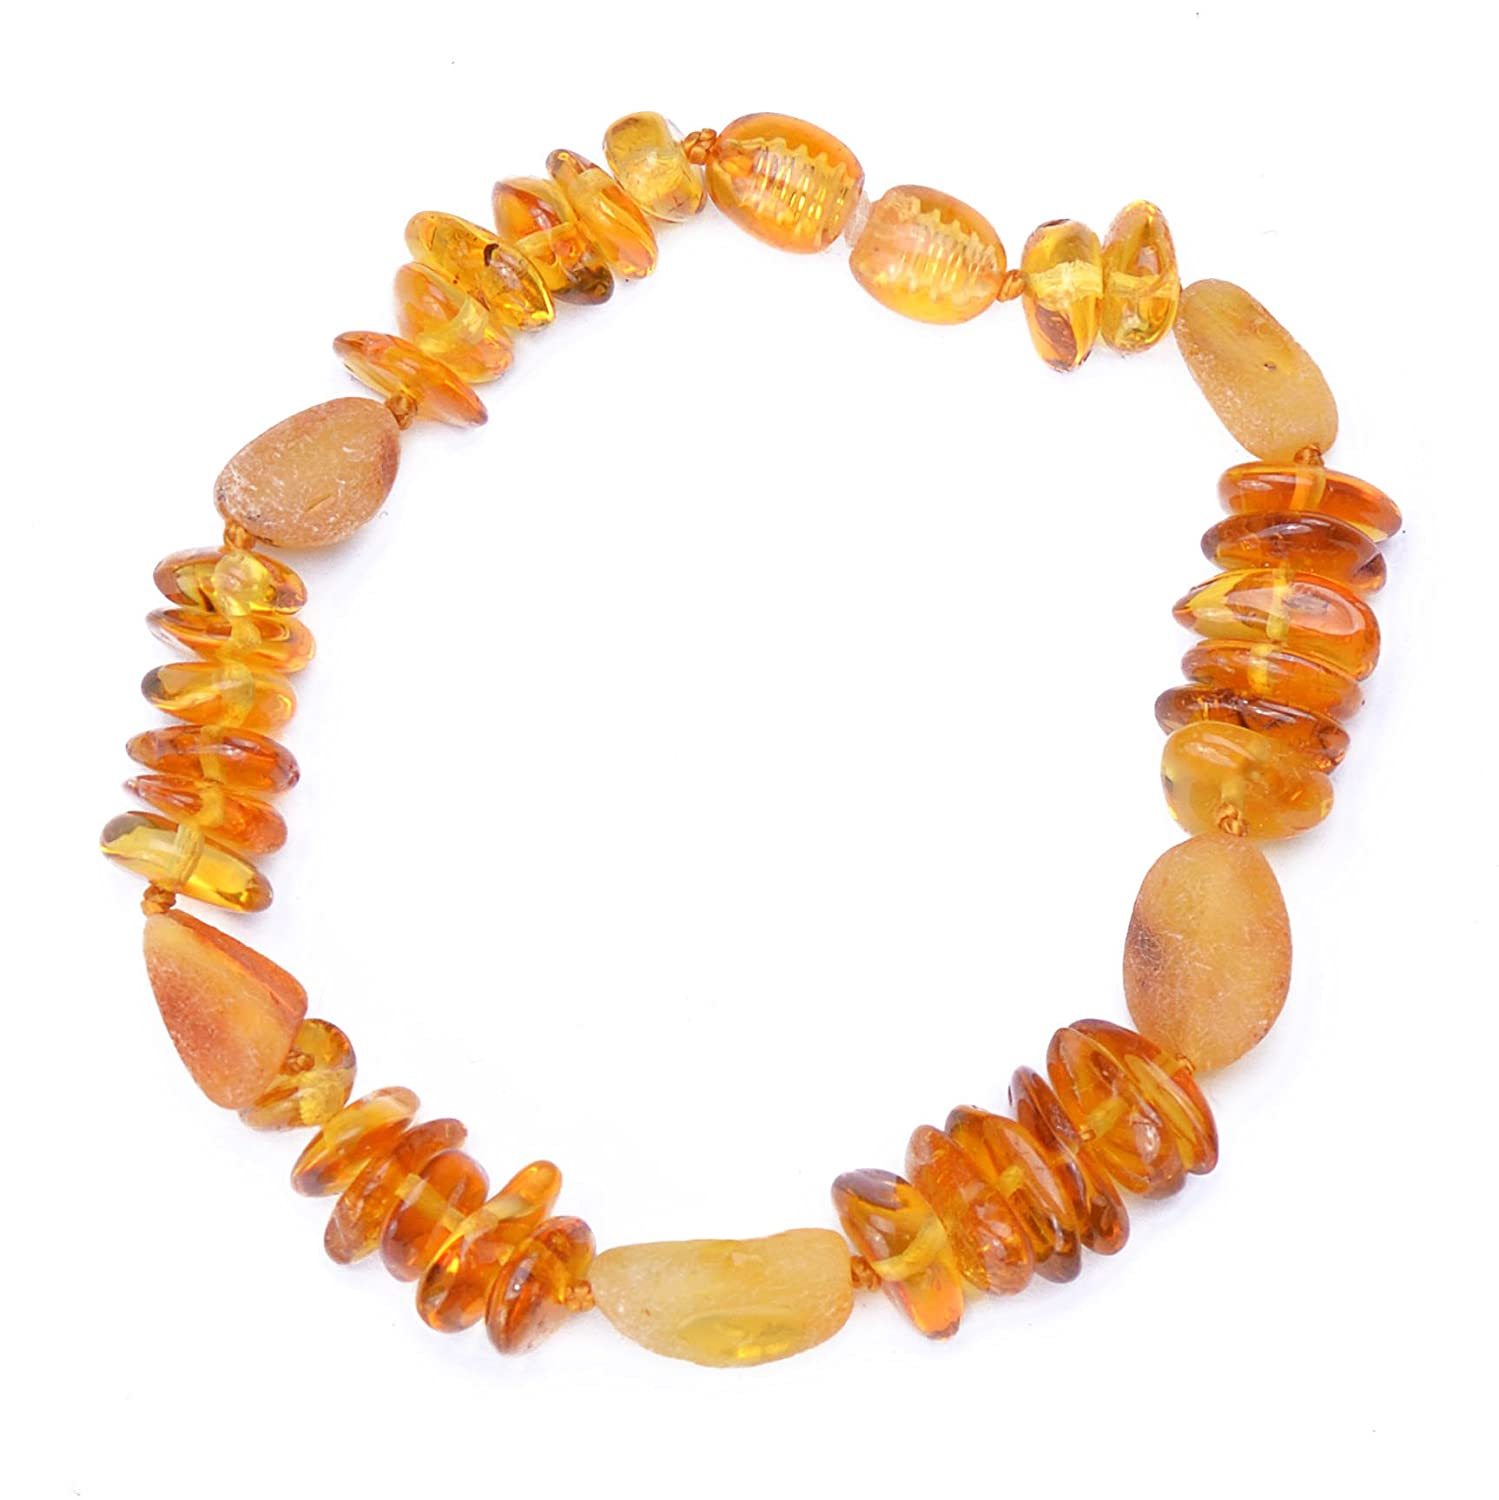 7.8 Inches, Butterscotch Choose Your Color and Choose Your Size! Polished Baltic Amber Bracelet for Adult with A Plastic Screw 3 Sizes and 6 Different Colors Genuine Baltic Amber